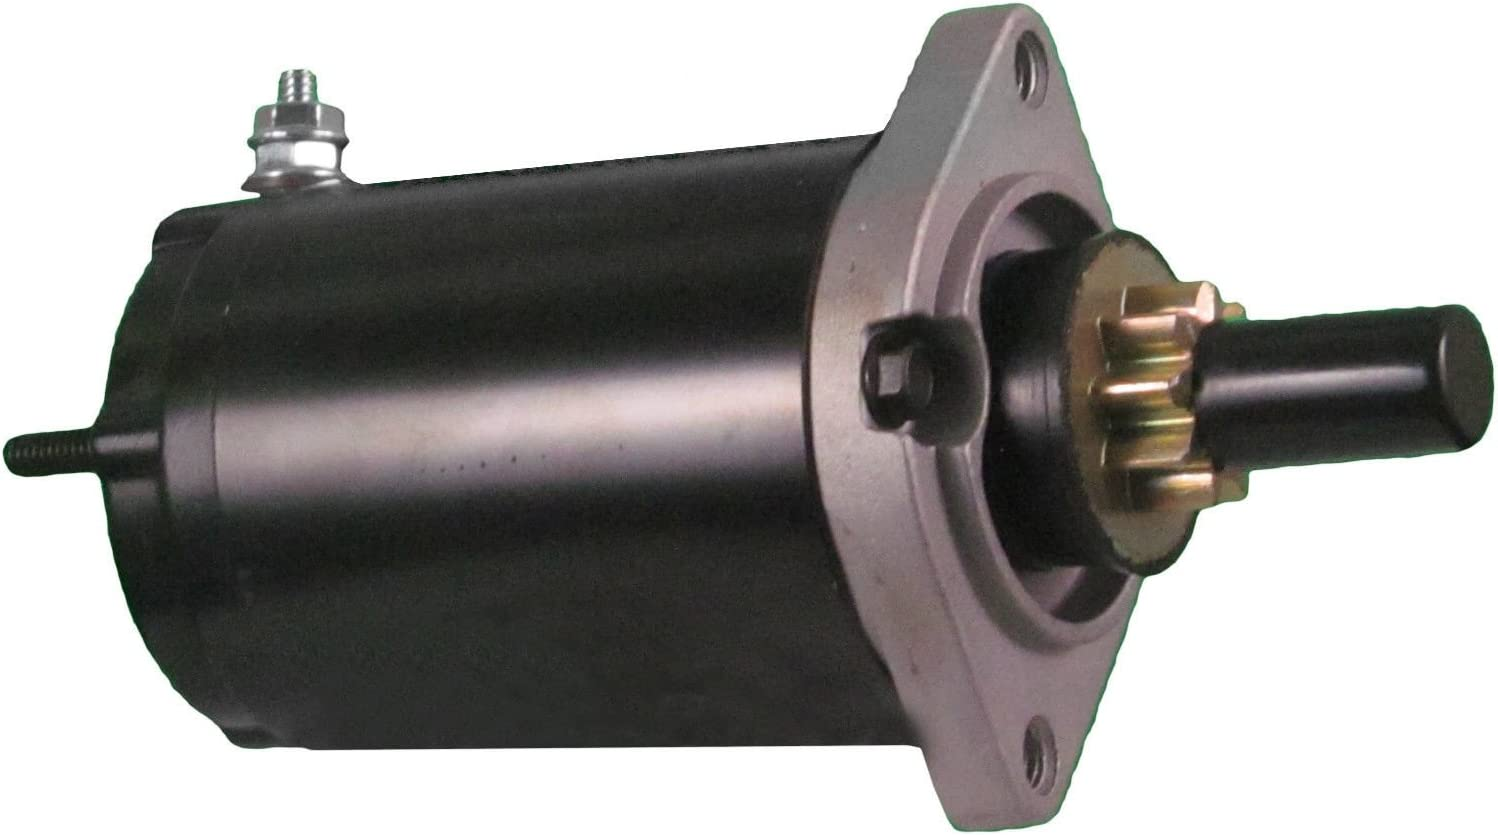 DB Electrical SAB5331 New Starter Drive Pinion Gear Compatible With//Replacement For Polaris 340 500 600 700 800 Snowmobile 0637-265 0645-380 220-21028 2200754 6513540 6513540-KT30SM